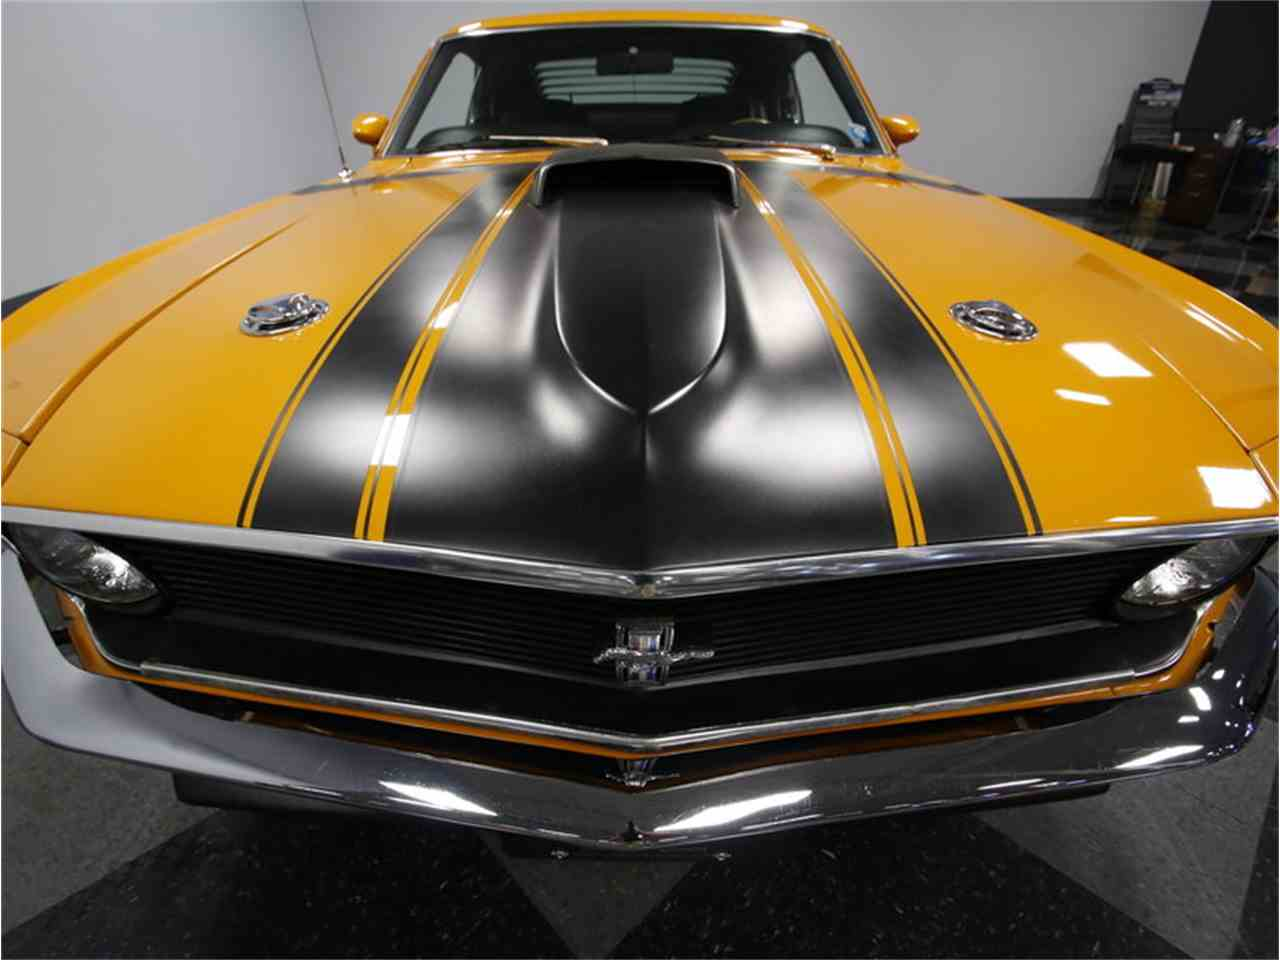 Large Picture of Classic '70 Mustang Boss 302 Tribute - $34,995.00 - IQT9